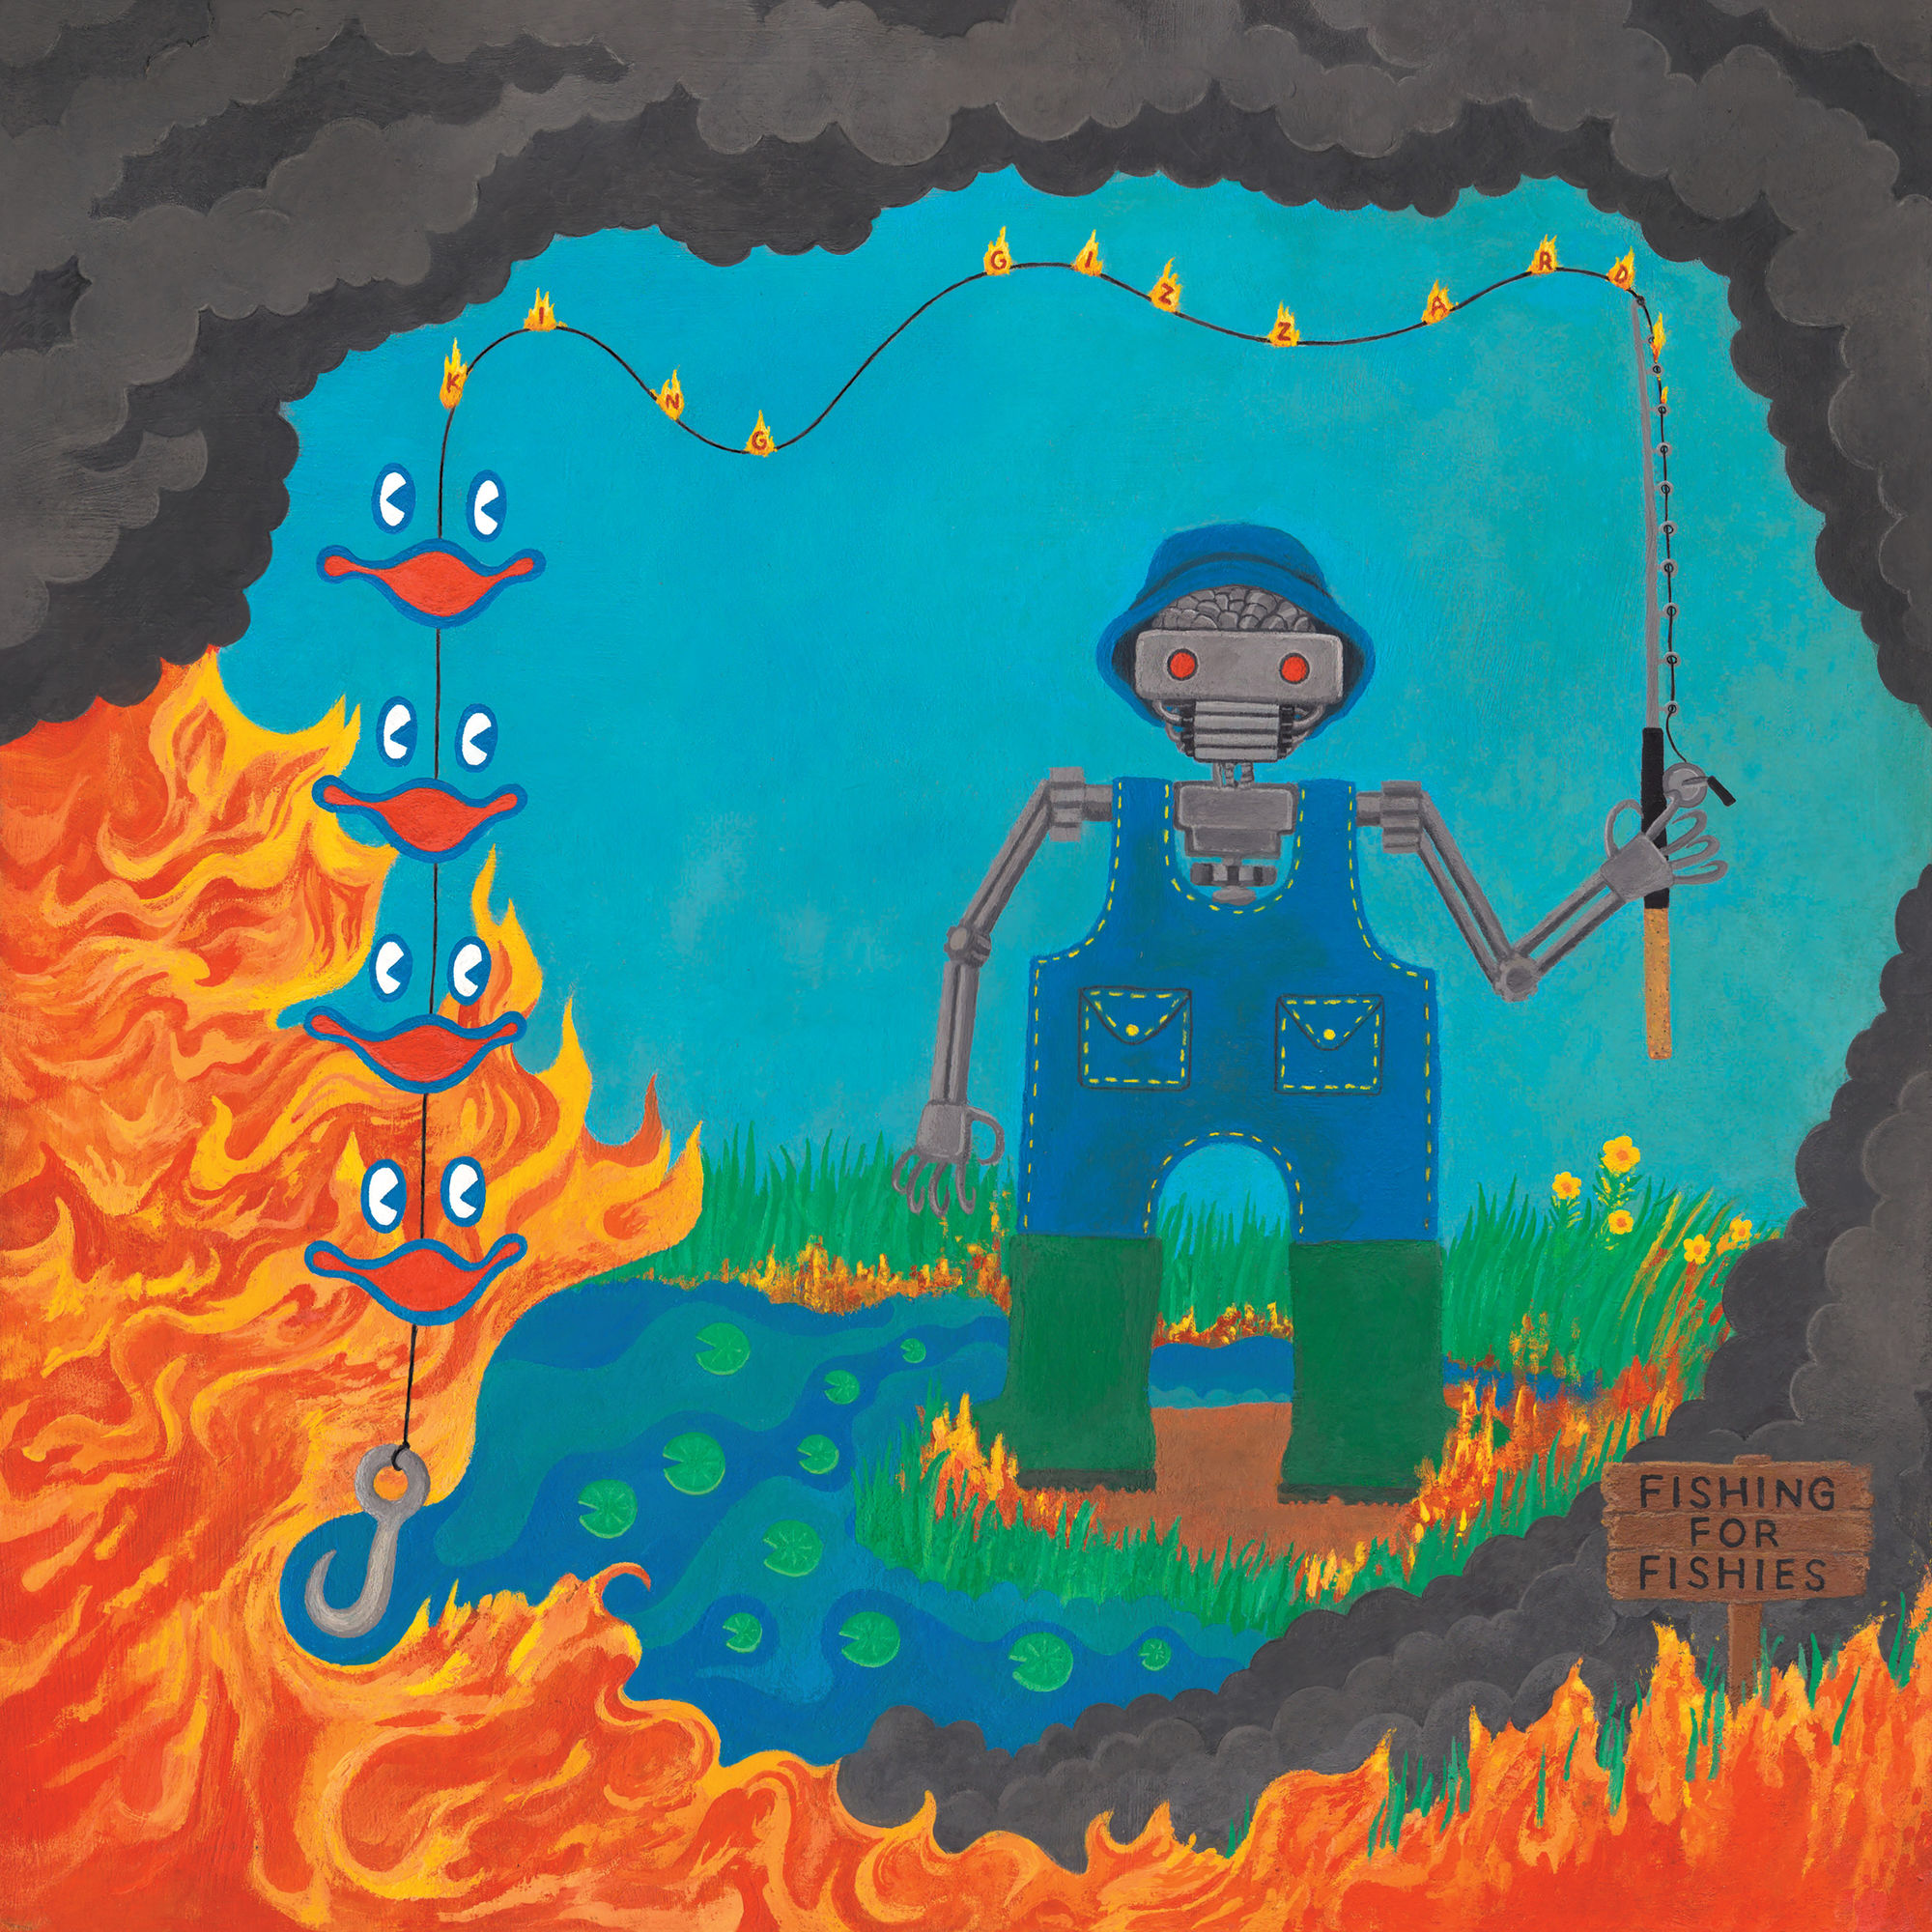 Fishing for Fishies  by King Gizzard & The Lizard Wizard (Image retrieved from iTunes-purchased MP3 file)